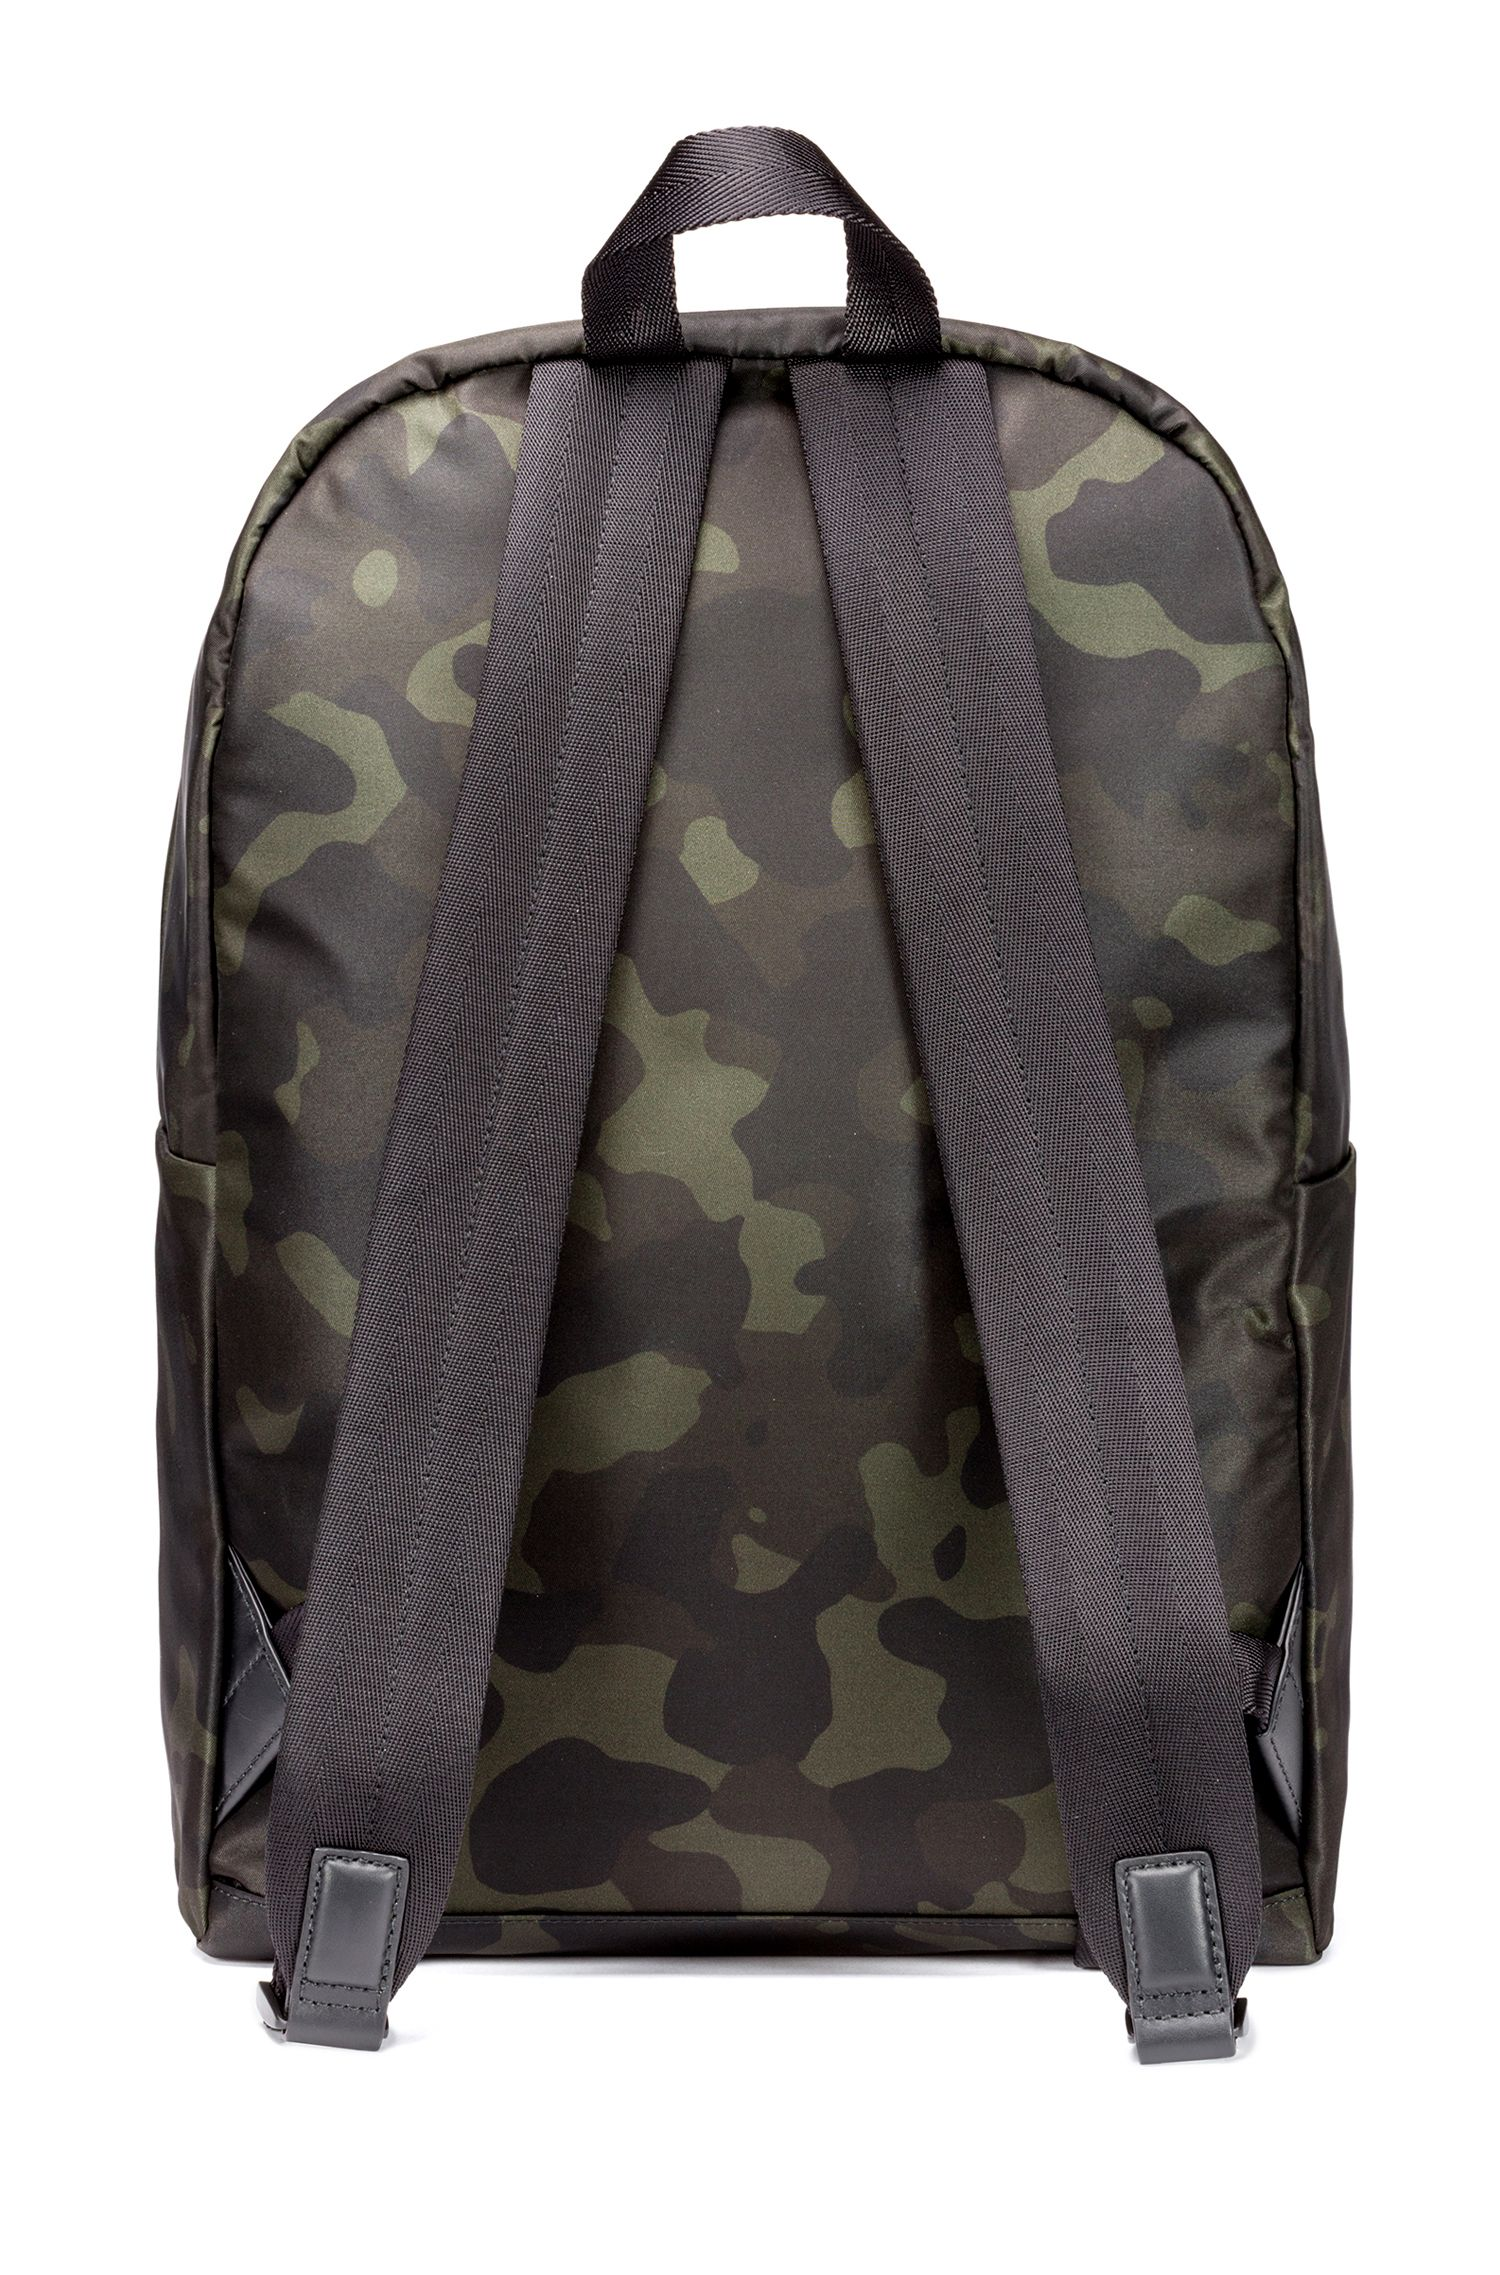 Camouflage-print backpack in nylon gabardine, Patterned